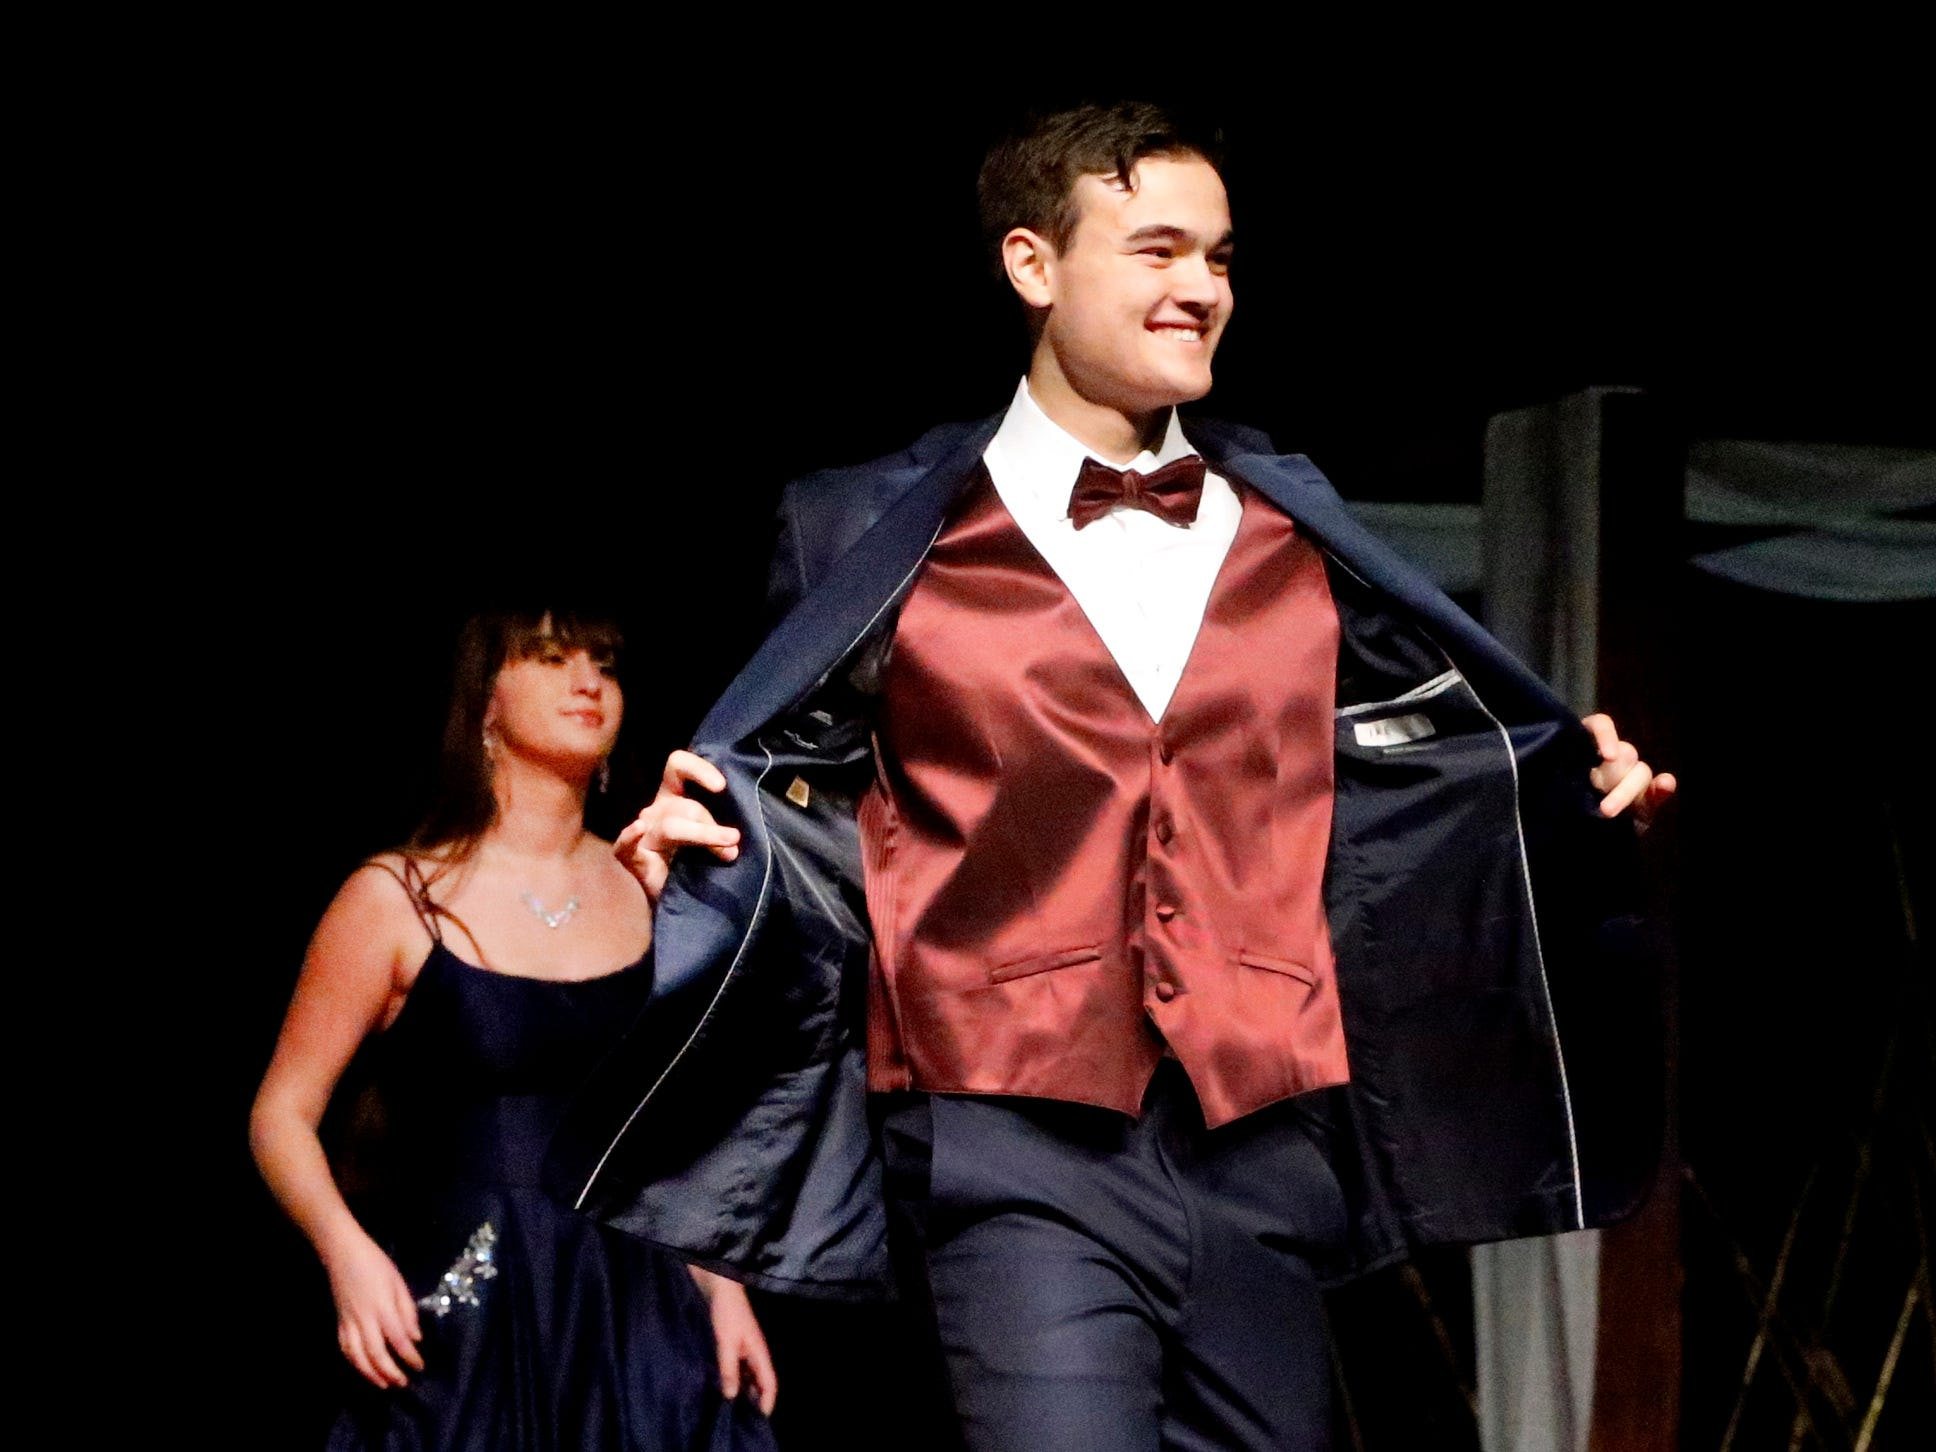 Zane Furqa shows off his tux at the end of the runway during the Siegel Prom Fashion show on Thursday, Feb. 14, 2019.